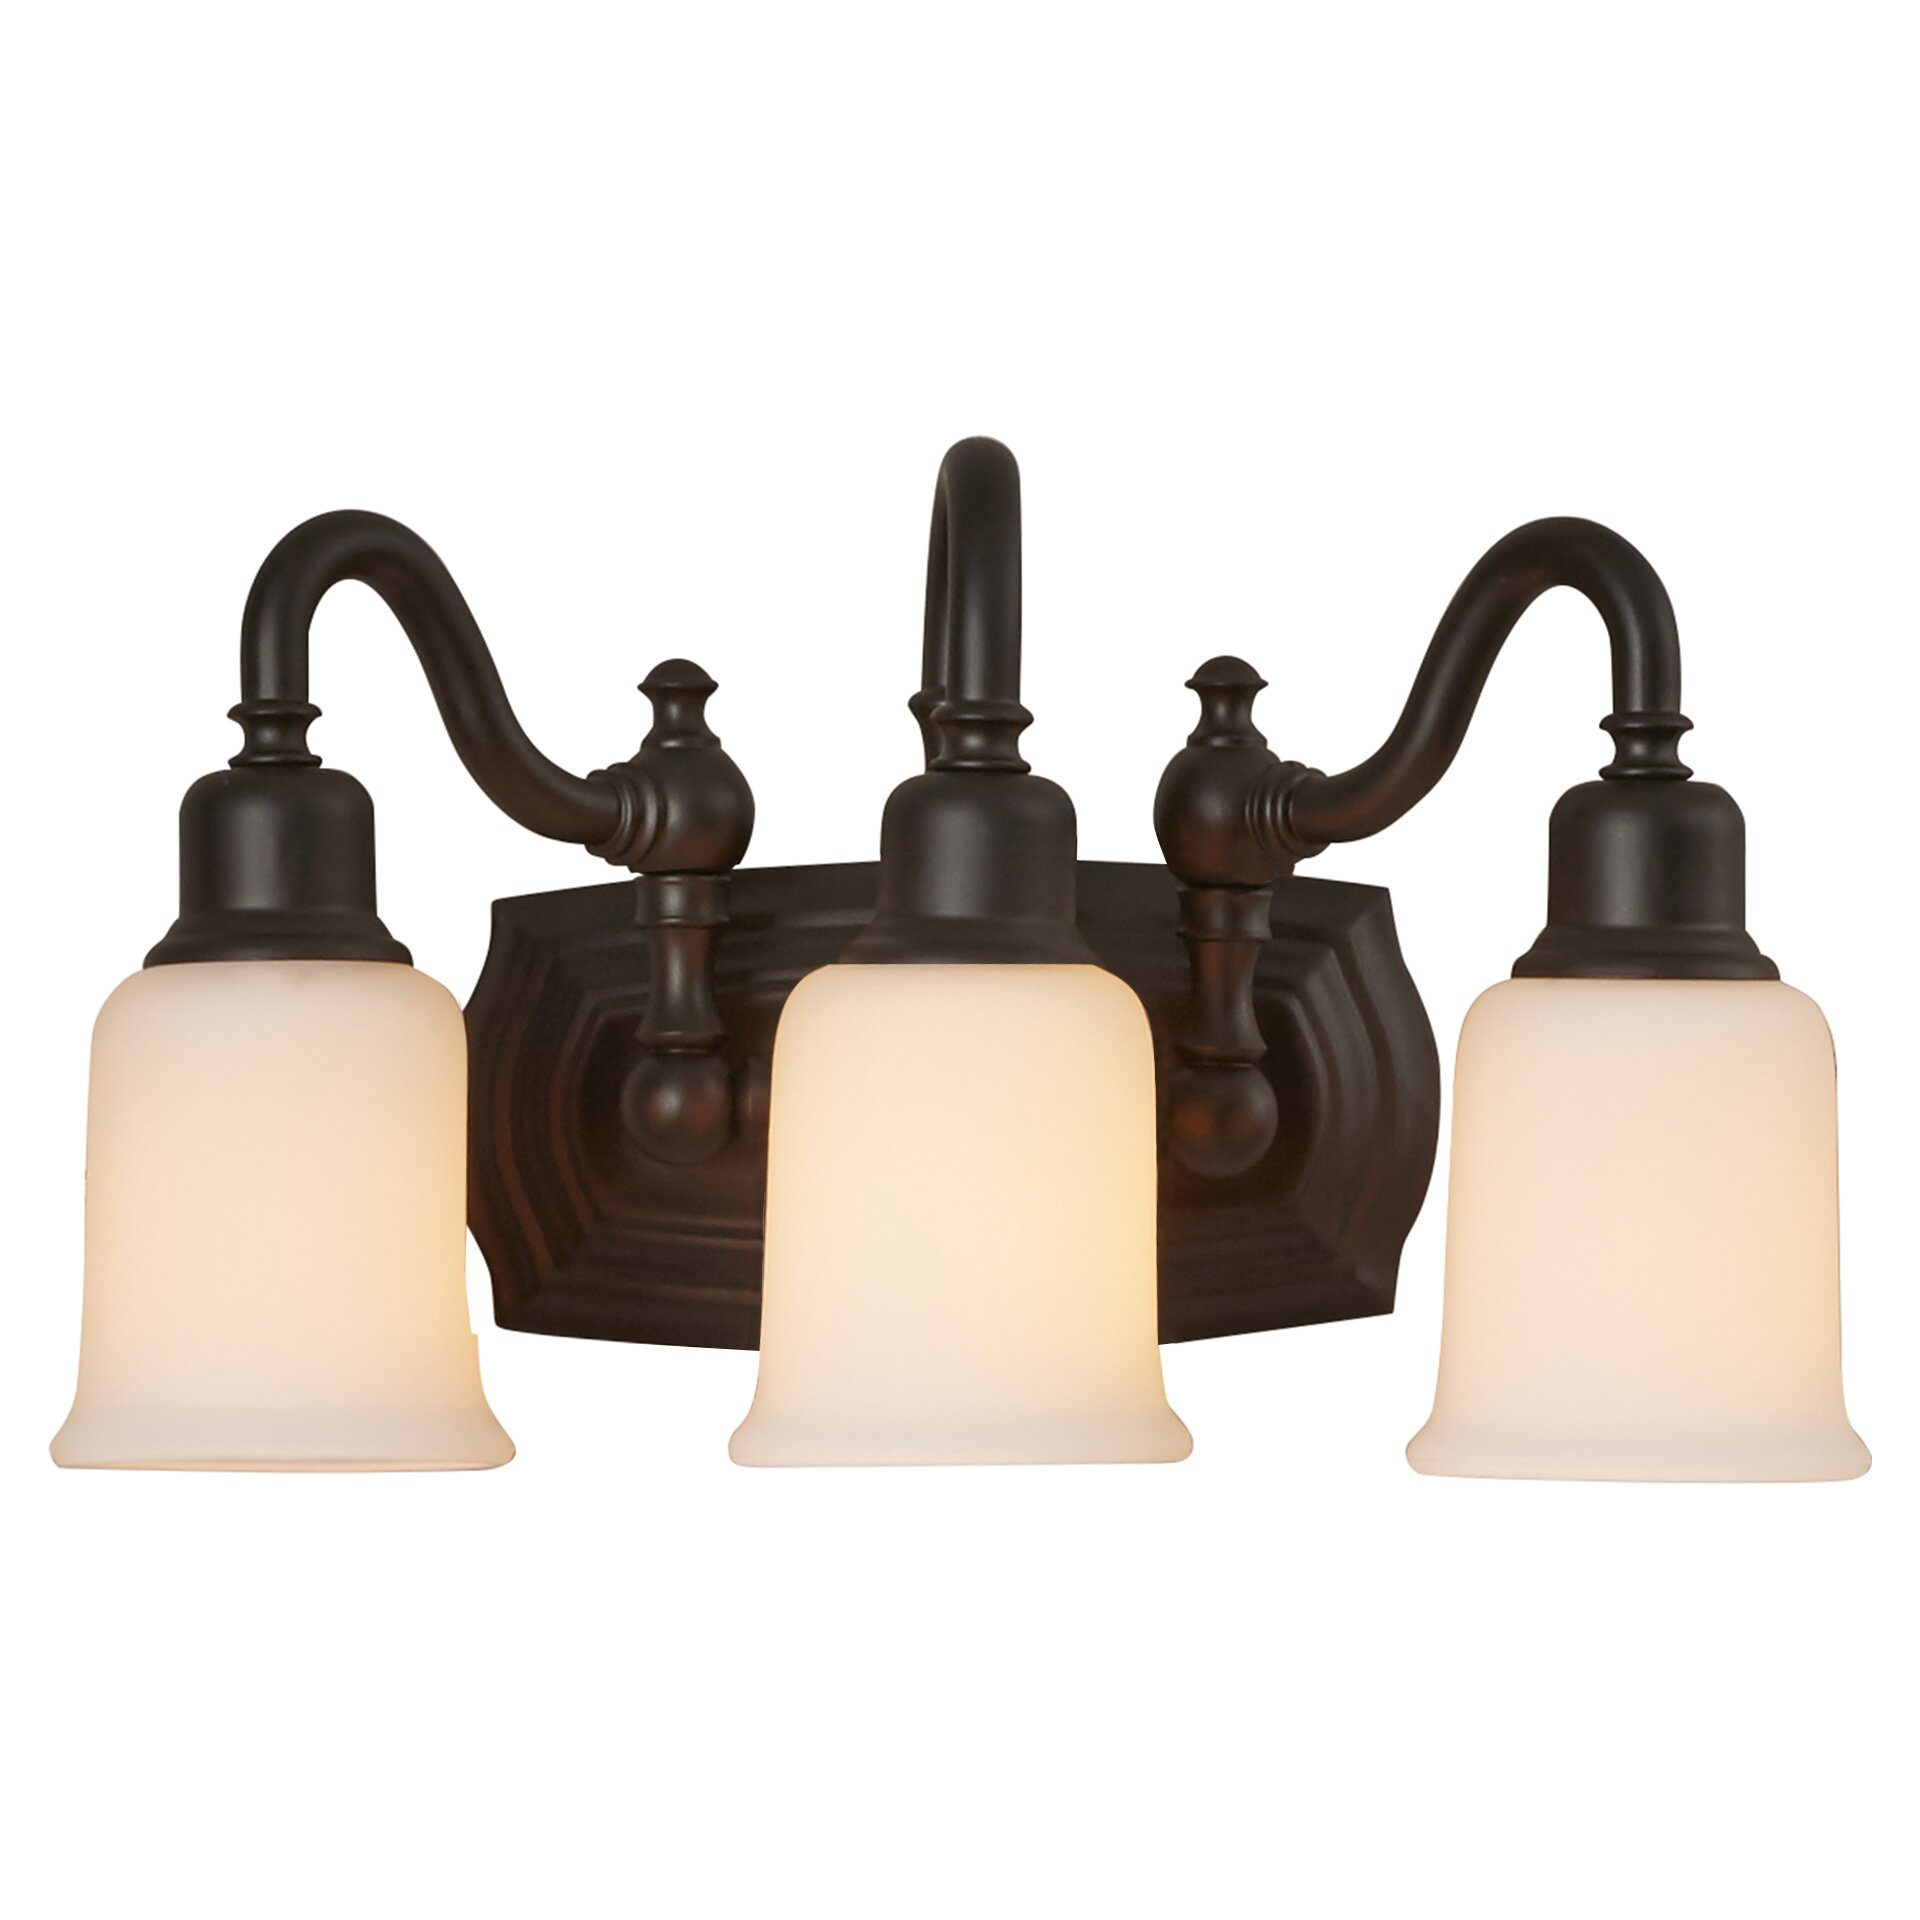 Darby Home Co Morrison 3 Light Bath Vanity Light & Reviews